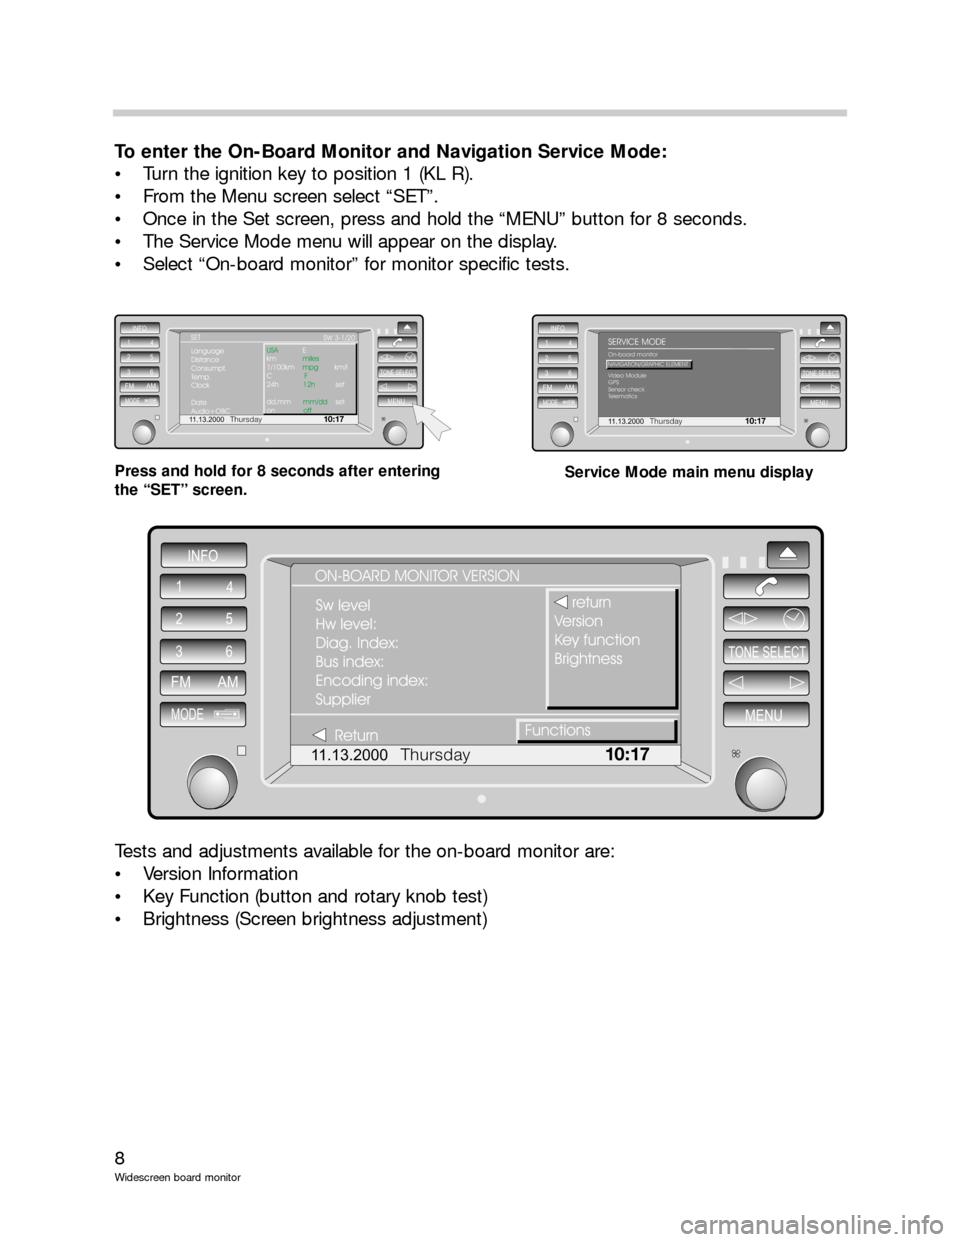 BMW 5 SERIES 2001 E39 Wide Screen On Board Monitor Workshop Manual, Page 8